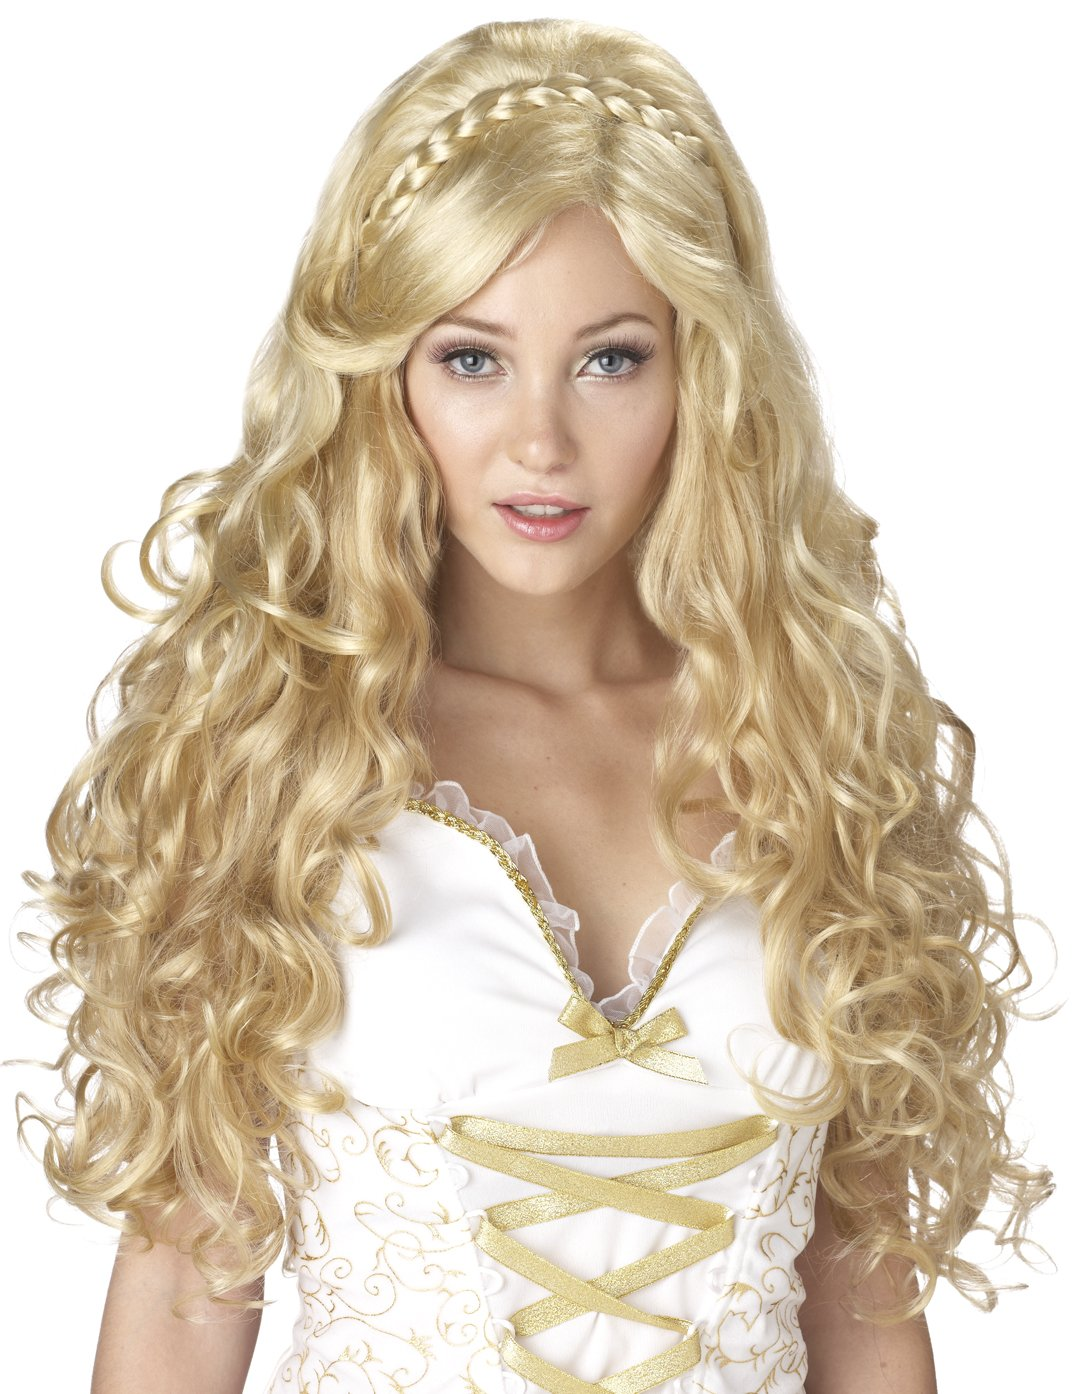 300 Roman Mythical Goddess Greek Adult  Costume Wig #70636